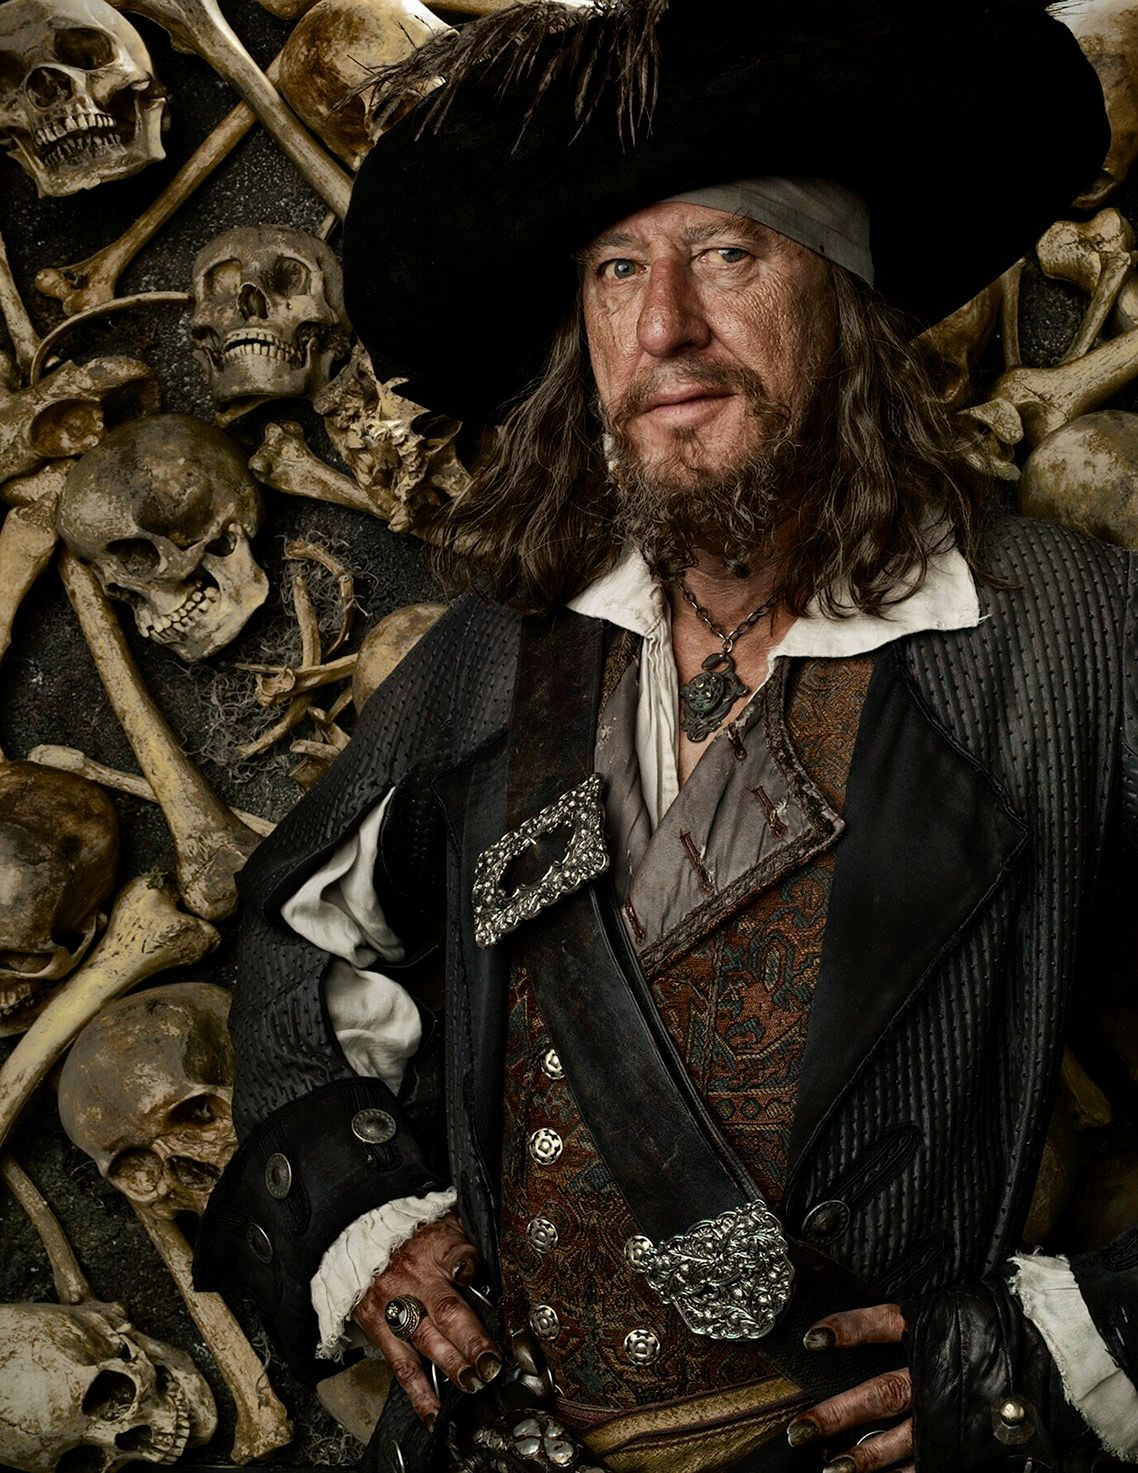 GEOFFREY RUSH • PIRATES OF THE CARIBBEAN • AT WORLD'S END